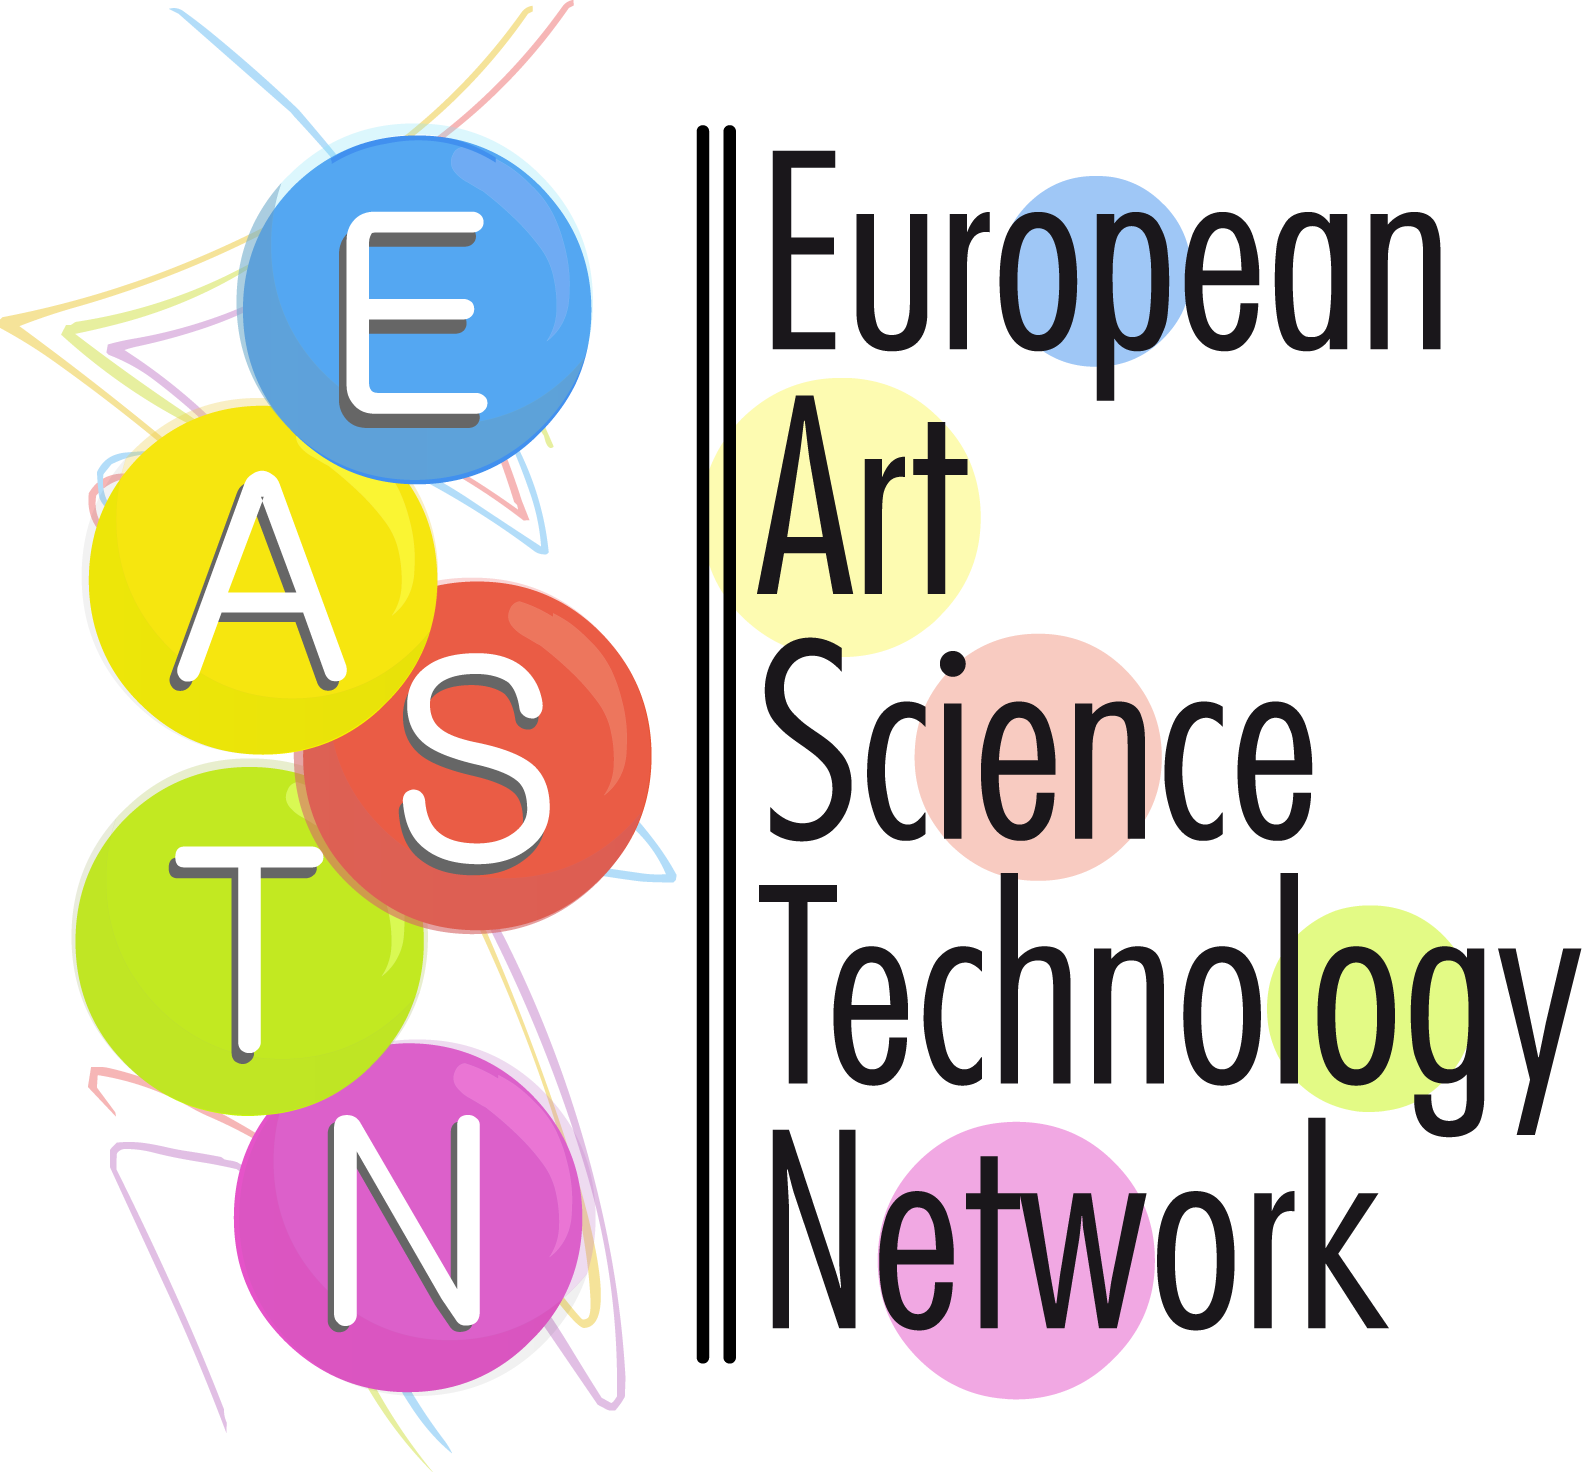 European Art Science Technology Network